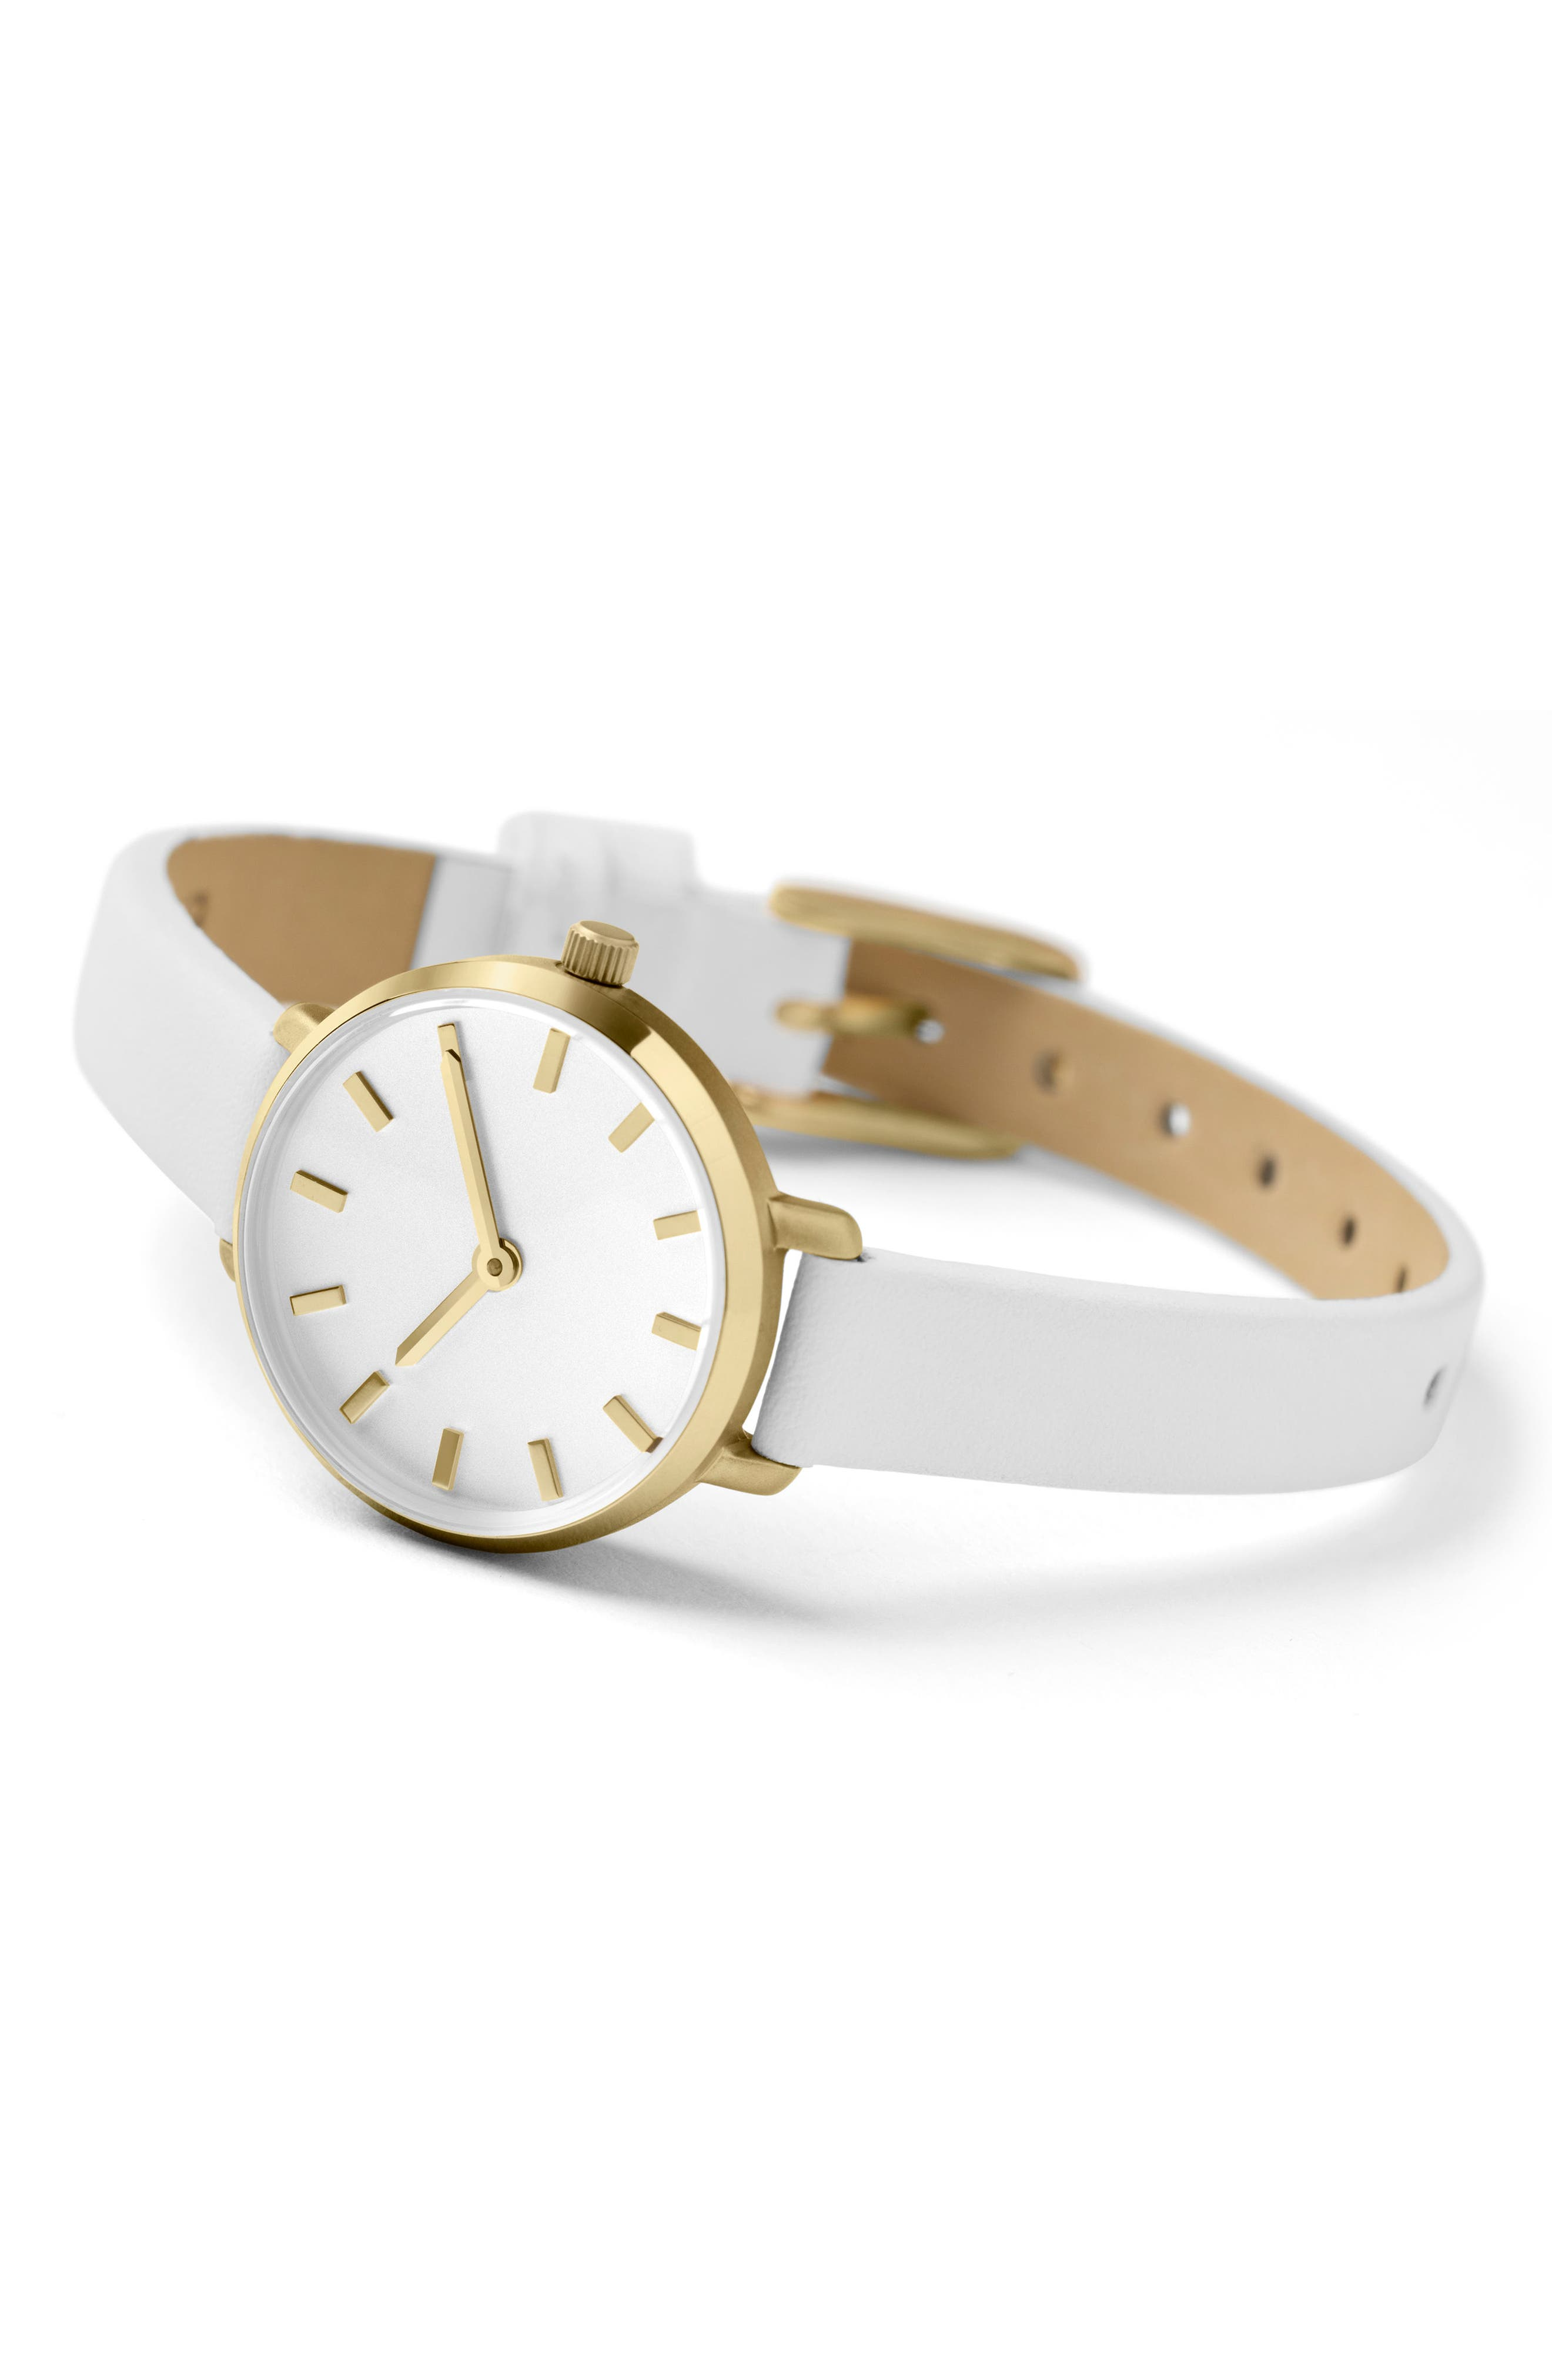 Beverly Round Leather Strap Watch, 26mm,                             Alternate thumbnail 2, color,                             White/ Gold